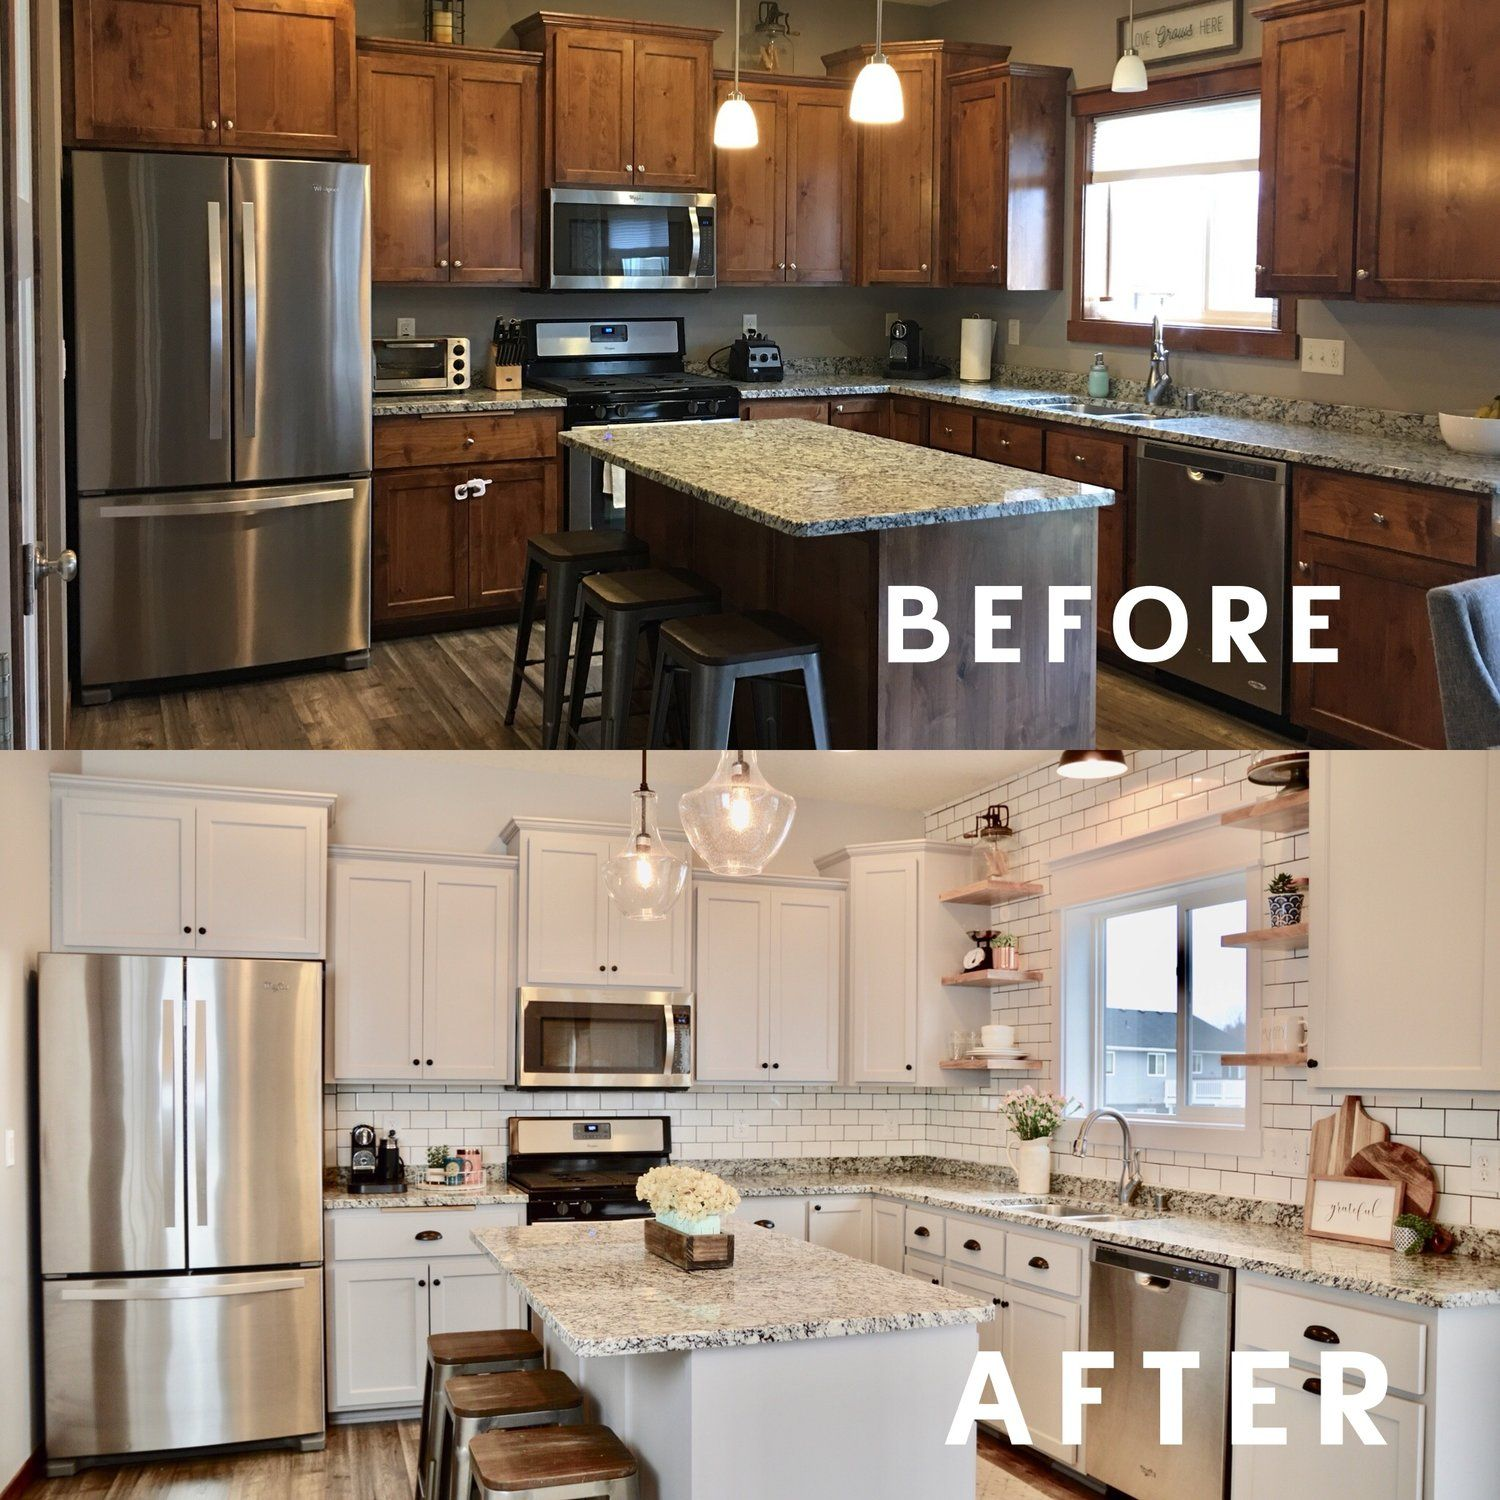 How to Update a Dated Home Without Remodeling – Welsh Design Studio